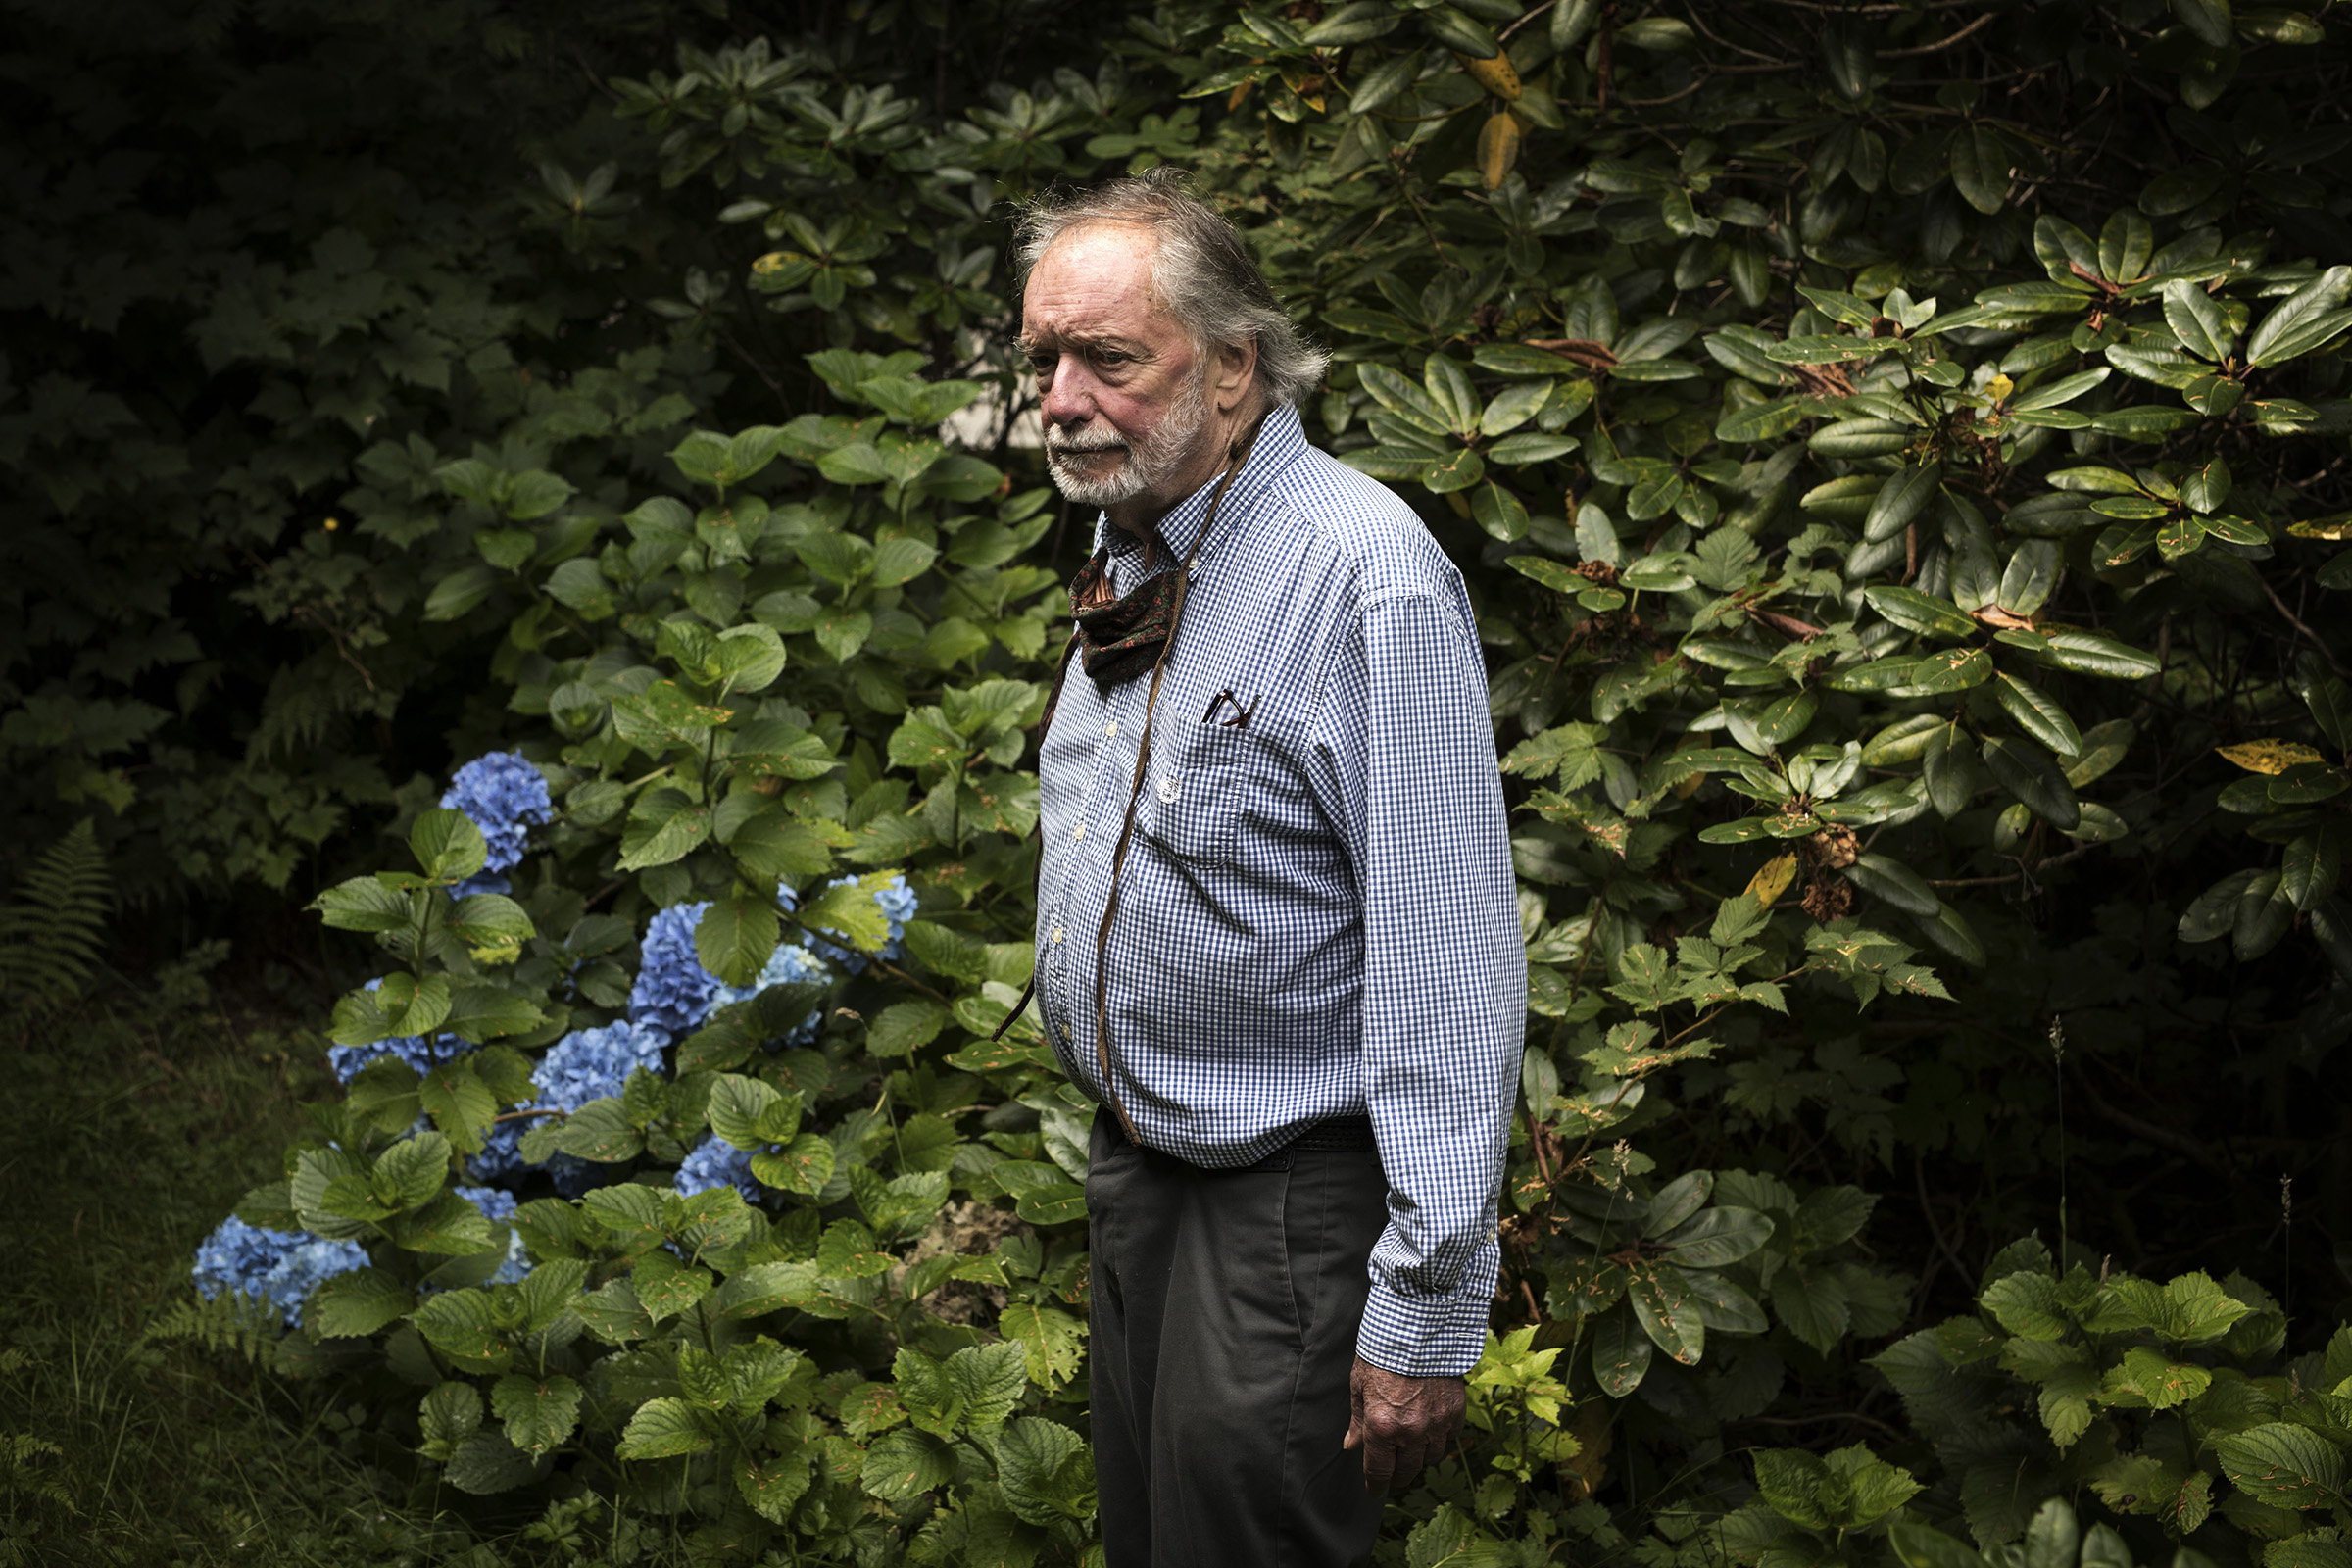 Louis Druehl poses for a photo outside his home in Bamfield, on Vancouver Island. The 83-year-old botanist has been studying kelp since 1962 and was the first person to create a kelp farm outside of Asia.